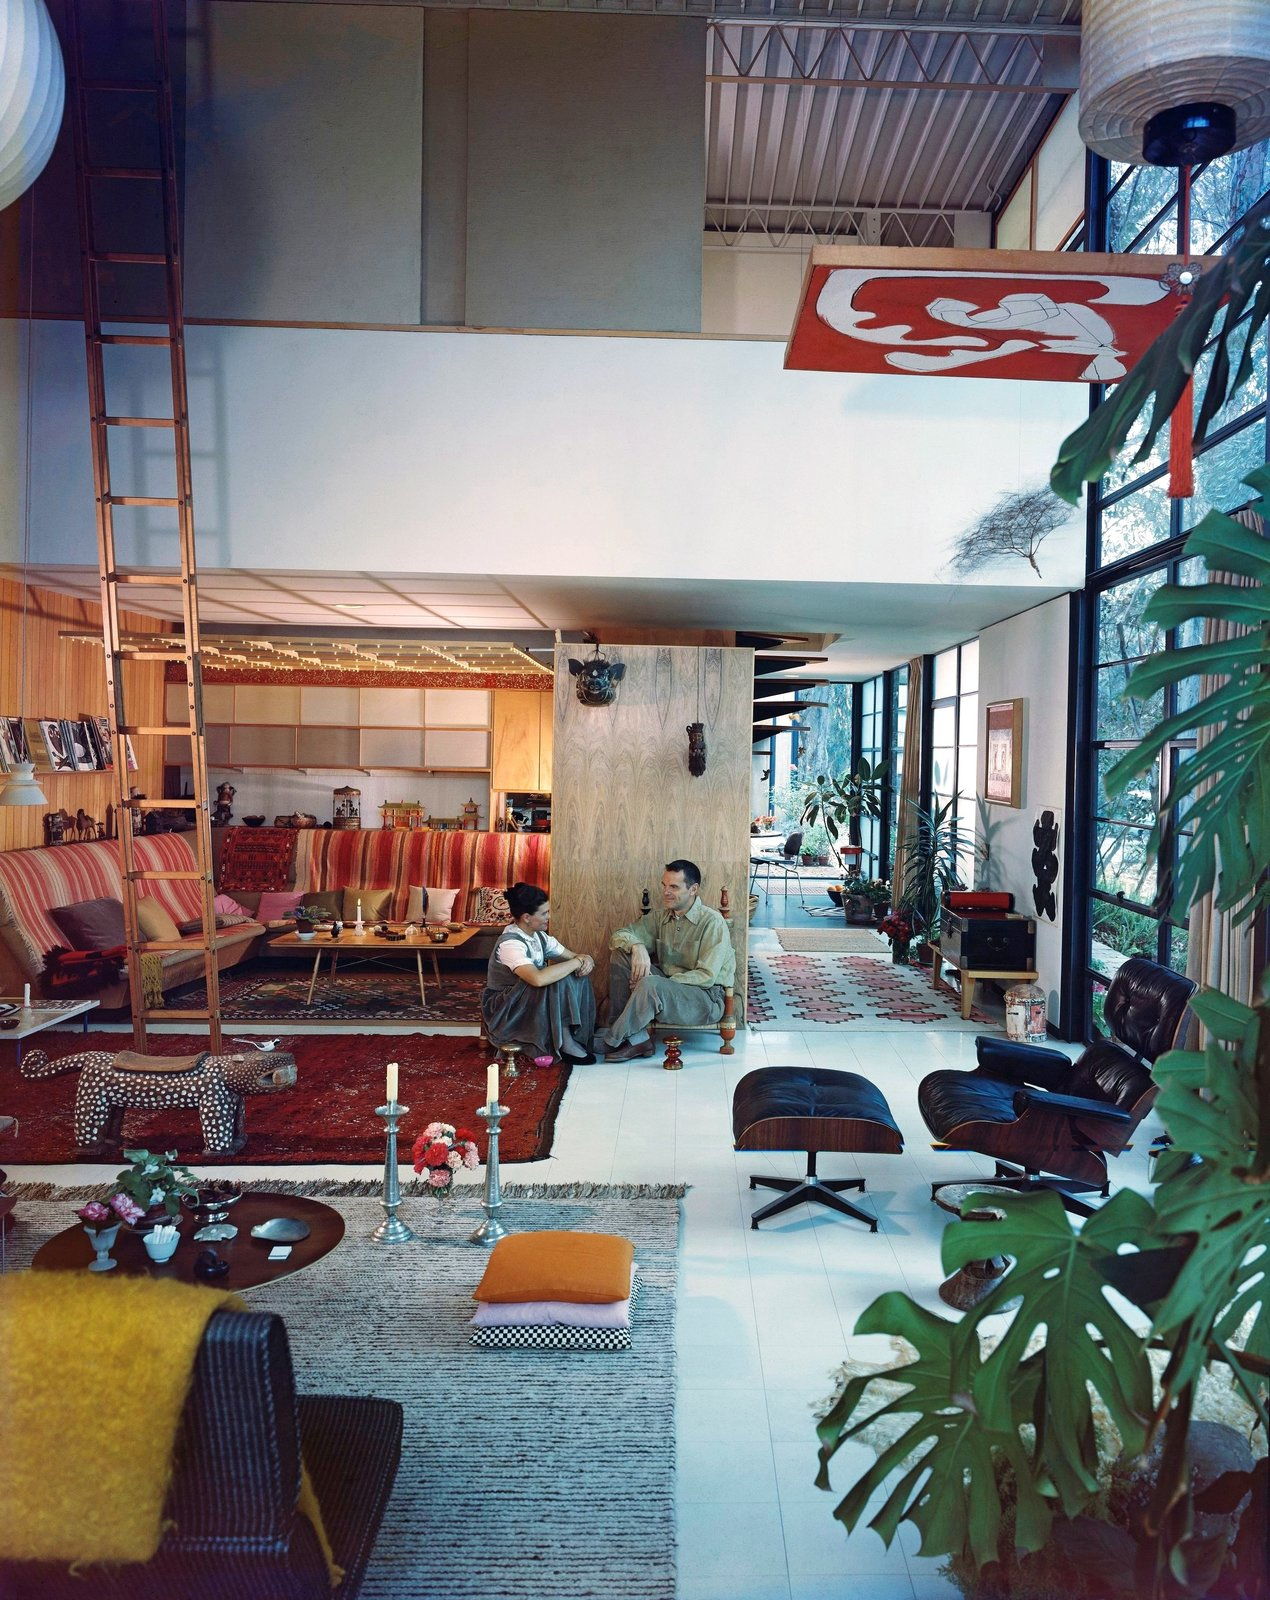 Eames House by Charles and Ray Eames, Pacific Palisades, CA 1949  Photo 3 of 11 in A New Book Celebrates Modernism With Futuristic Homes and Visionary Masterpieces